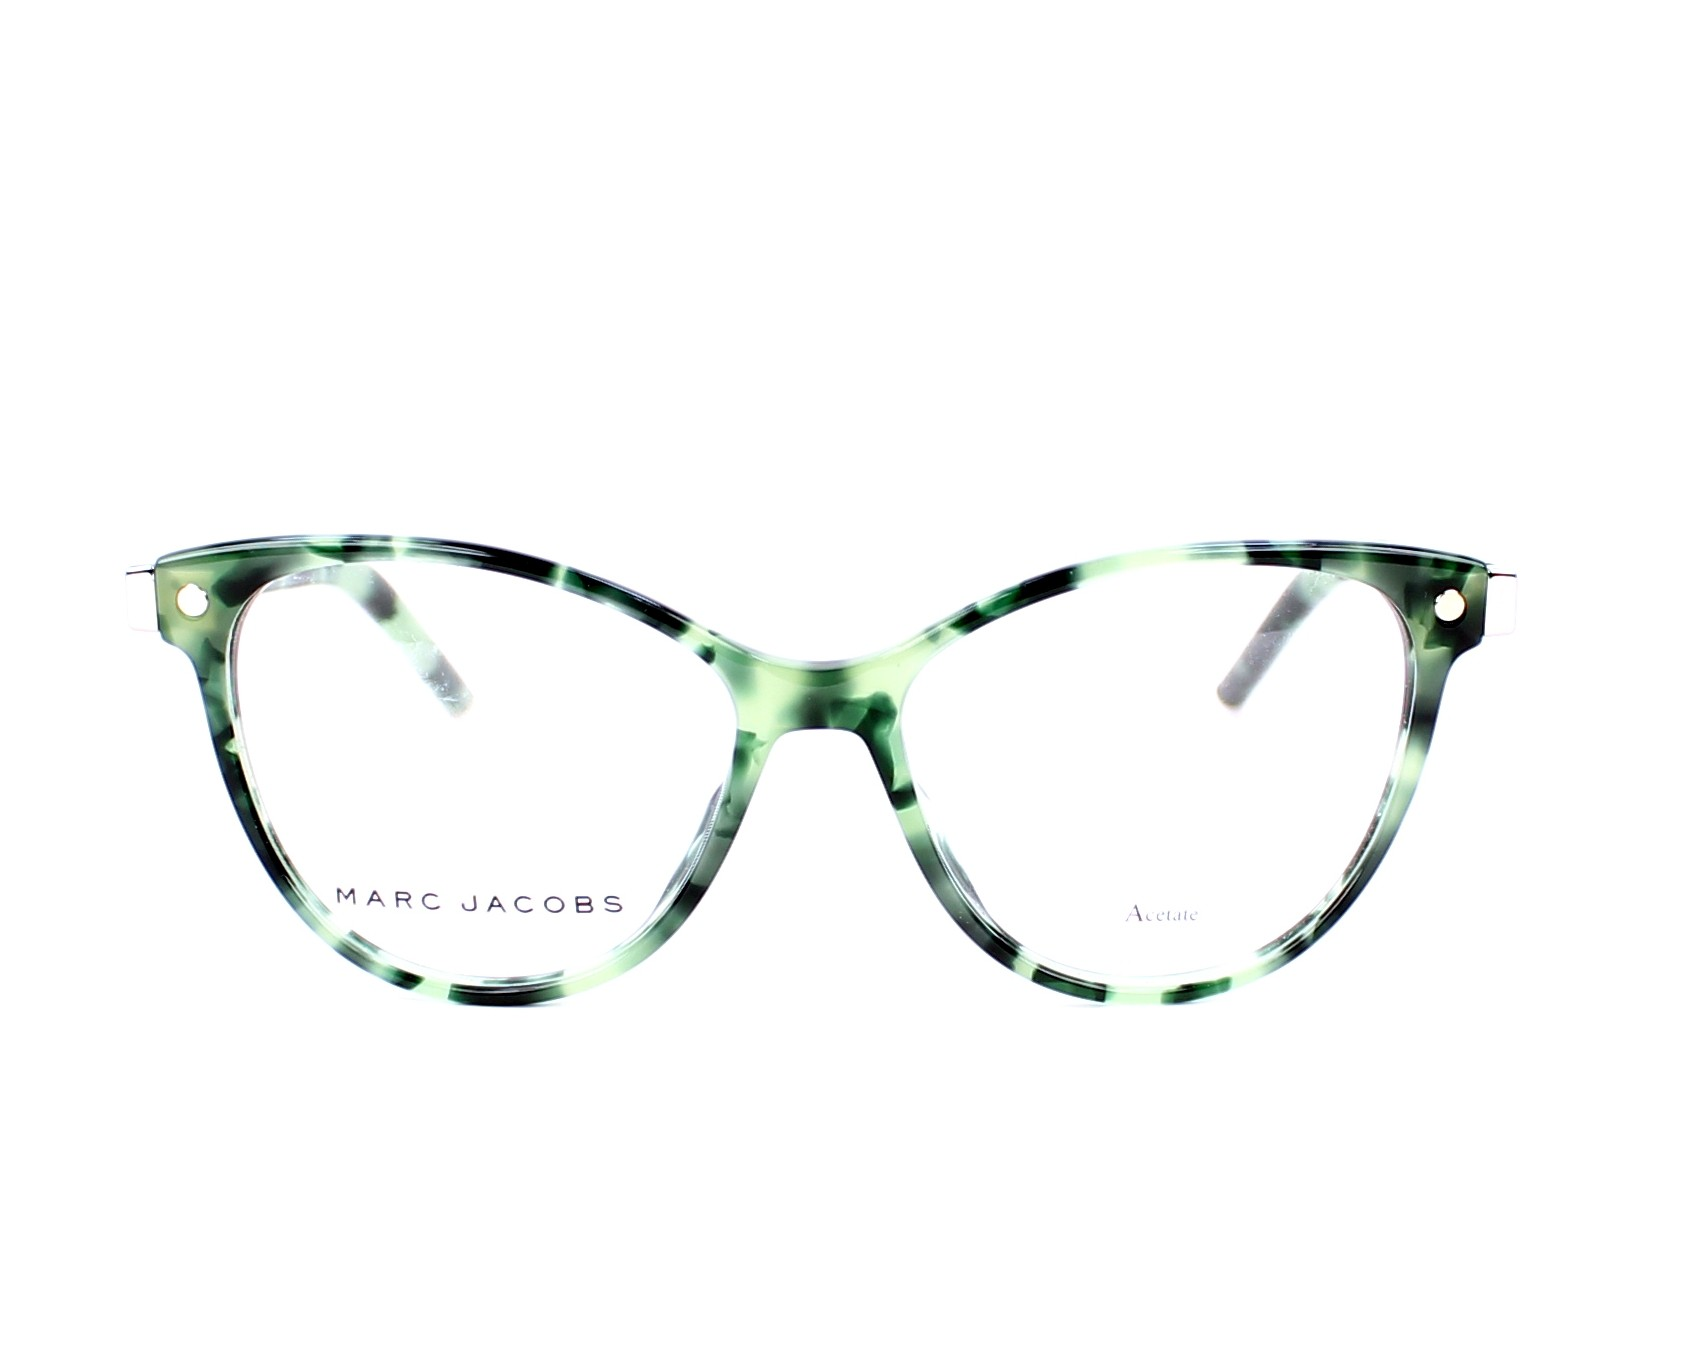 Marc Jacobs Eyeglasses Marc 20 U1s Green